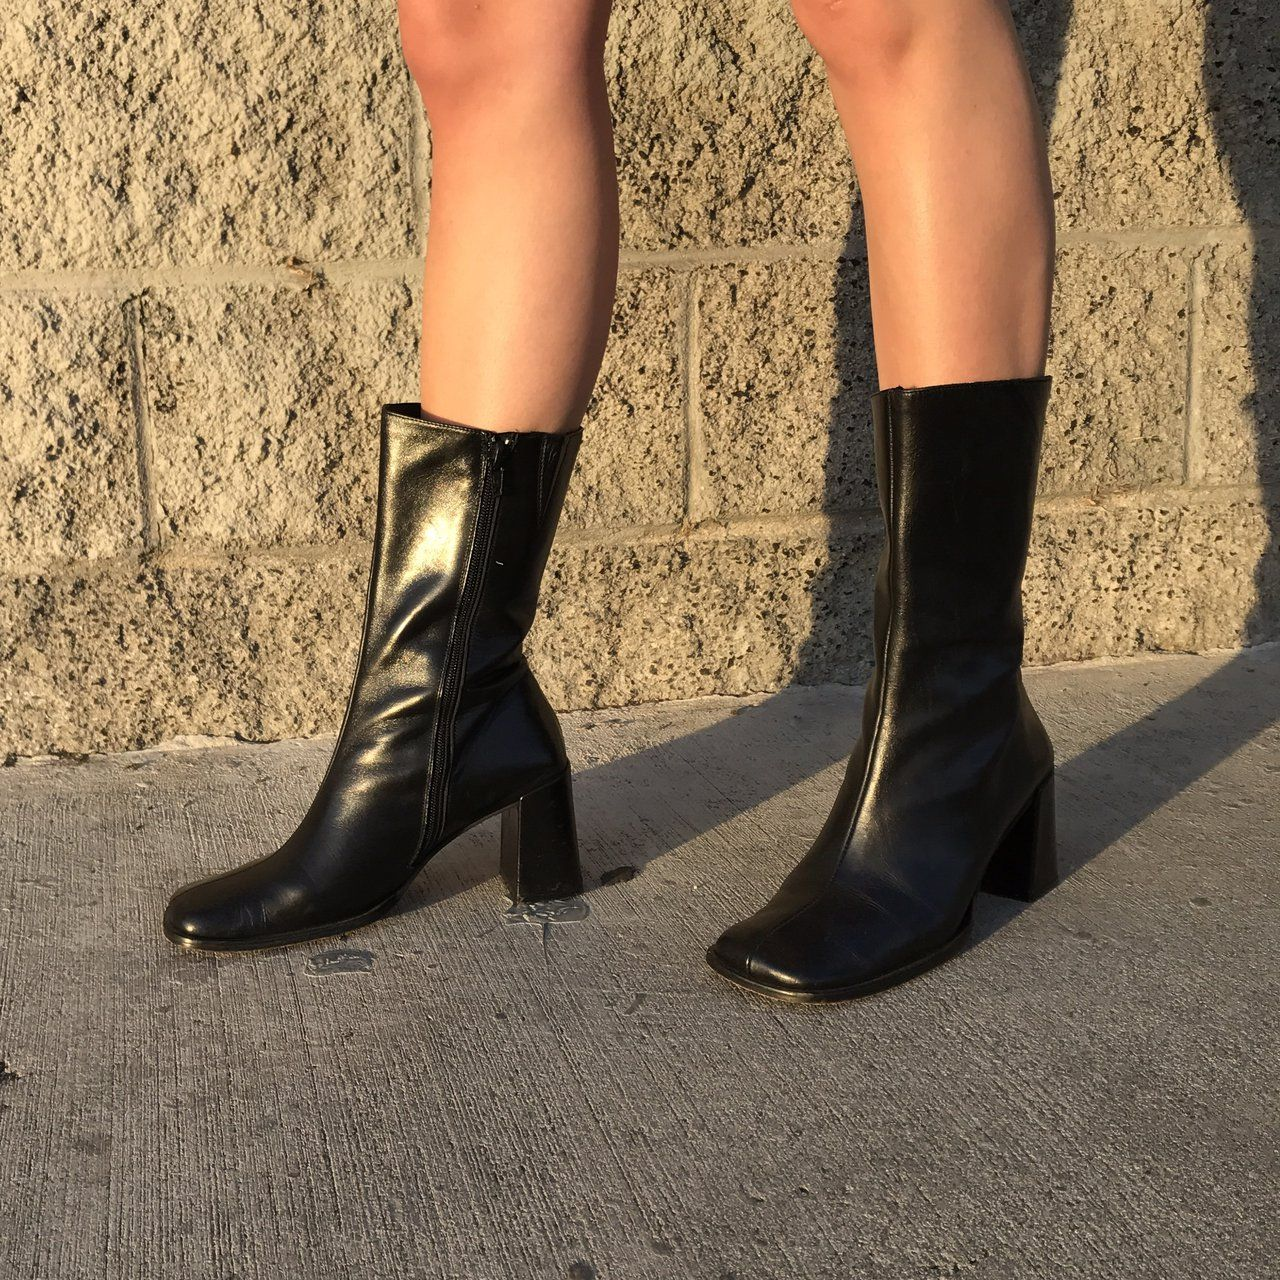 Vintage Guess block heel leather boots! 90s style, black leather, mid calf  rise, square toe, 3 inch hee… | Black heel boots, Leather boots heels, Boots  outfit ankle